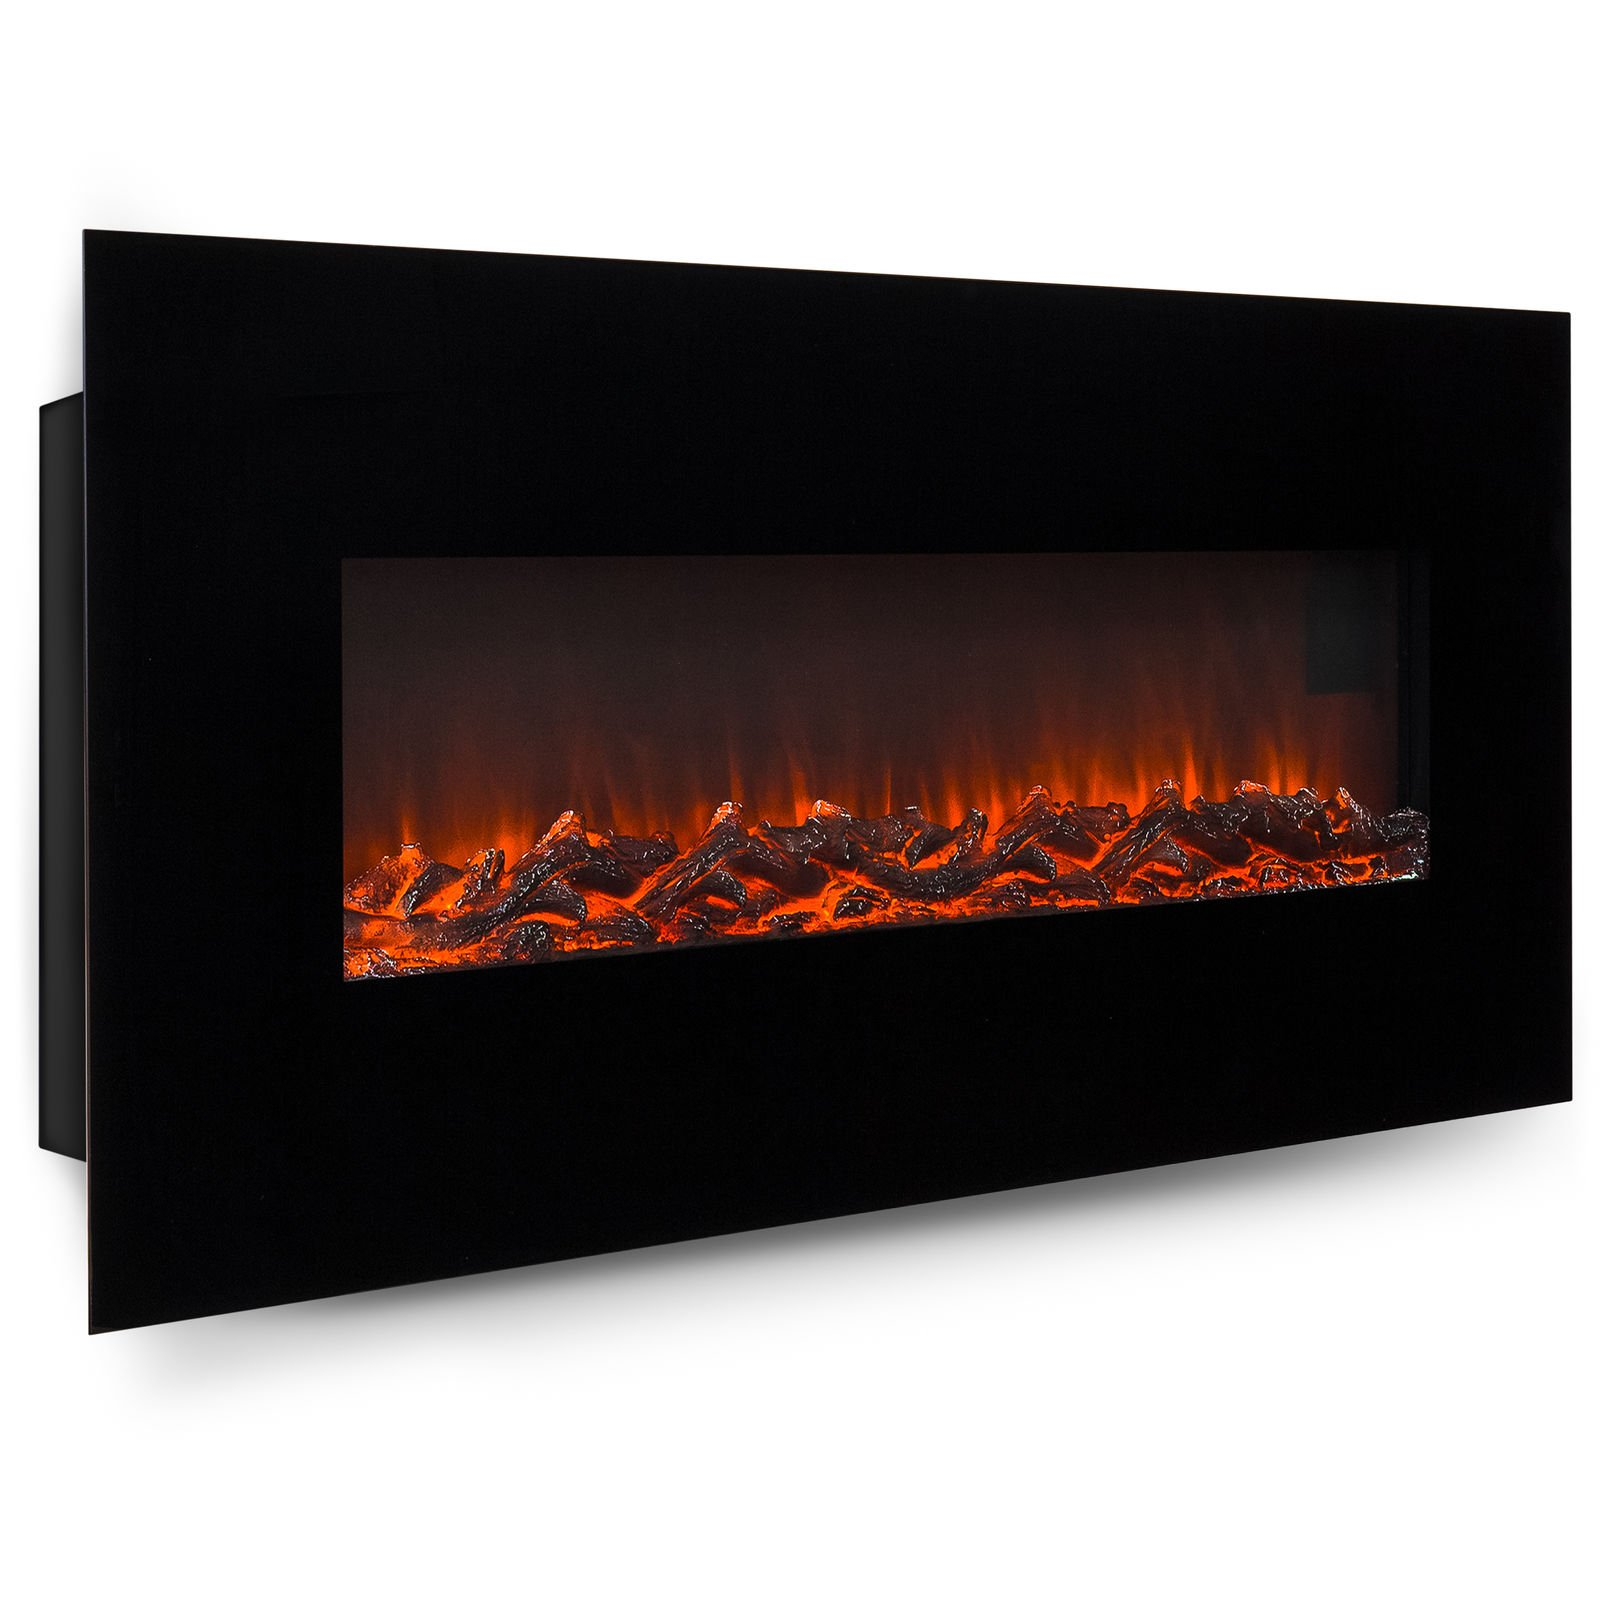 NEW 50'' Electric Wall Mounted Fireplace Heater W/ Adjustable Heating Metal, Glass